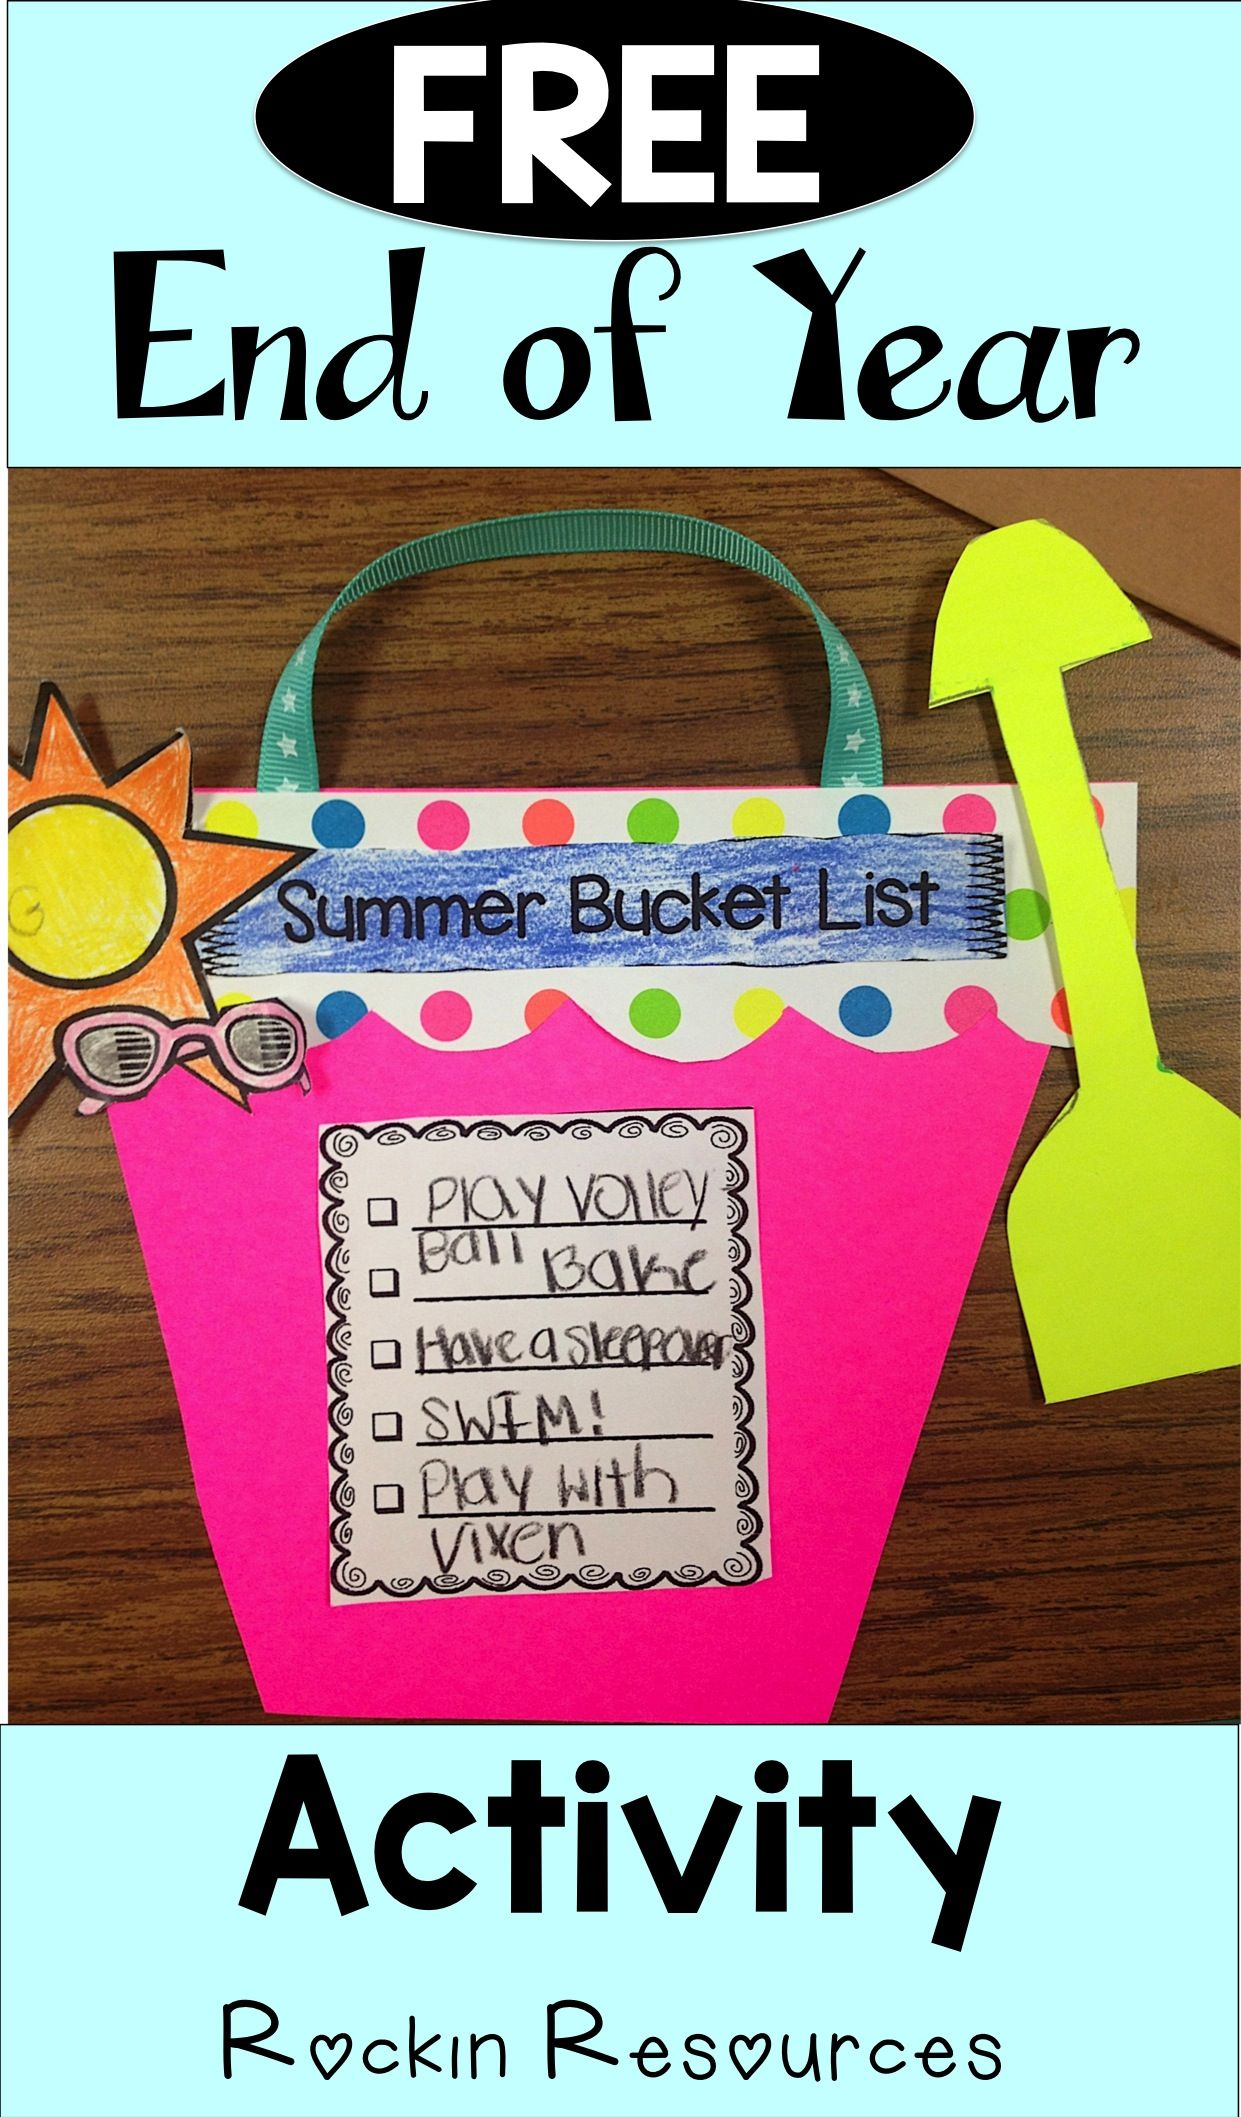 Summer Bucket List Activity Summer Bucket List Activity Summer